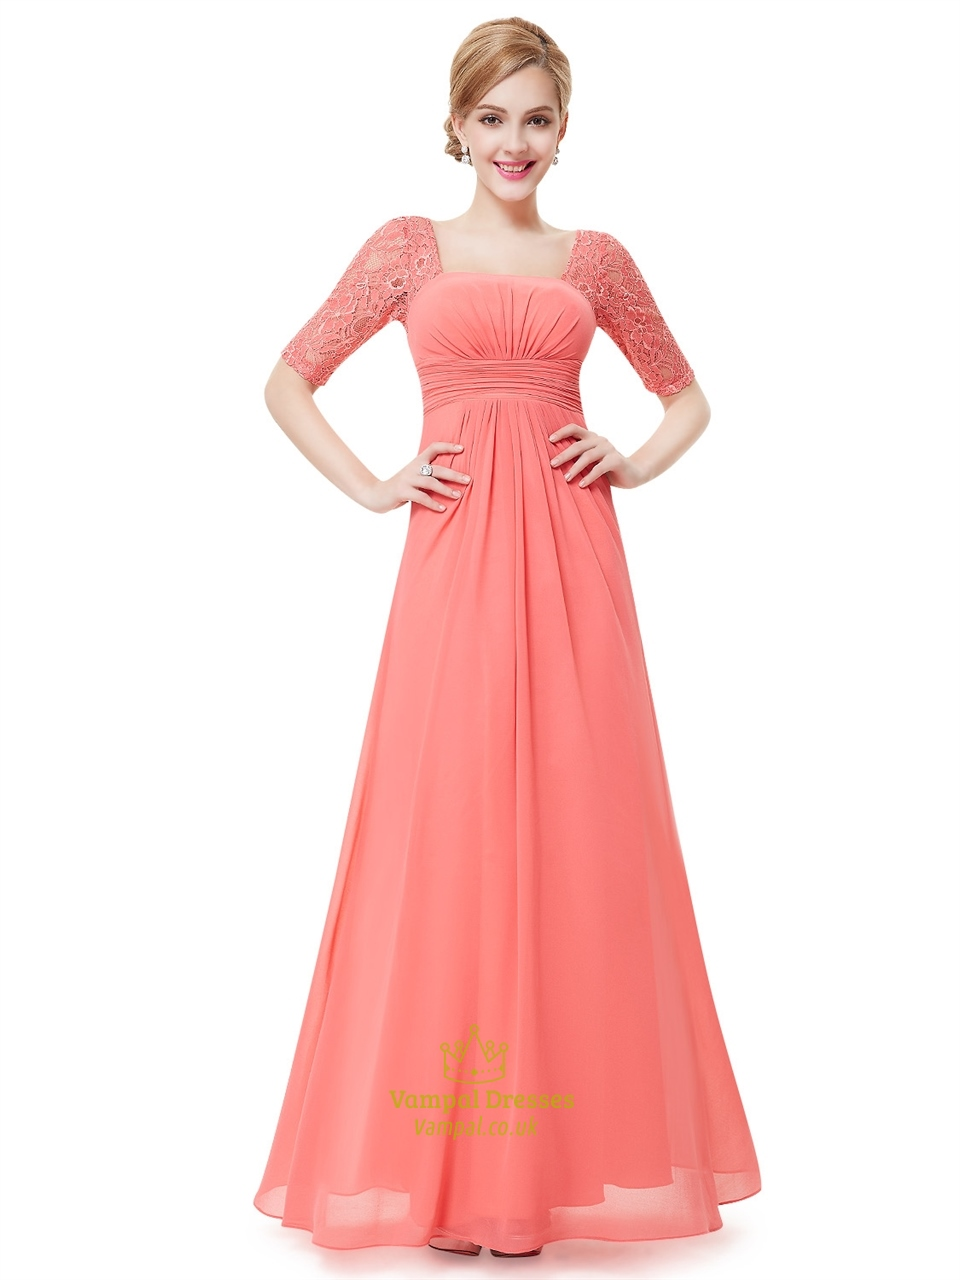 Coral chiffon floor length bridesmaid dress with lace half sleeves coral chiffon floor length bridesmaid dress with lace half sleeves ombrellifo Image collections